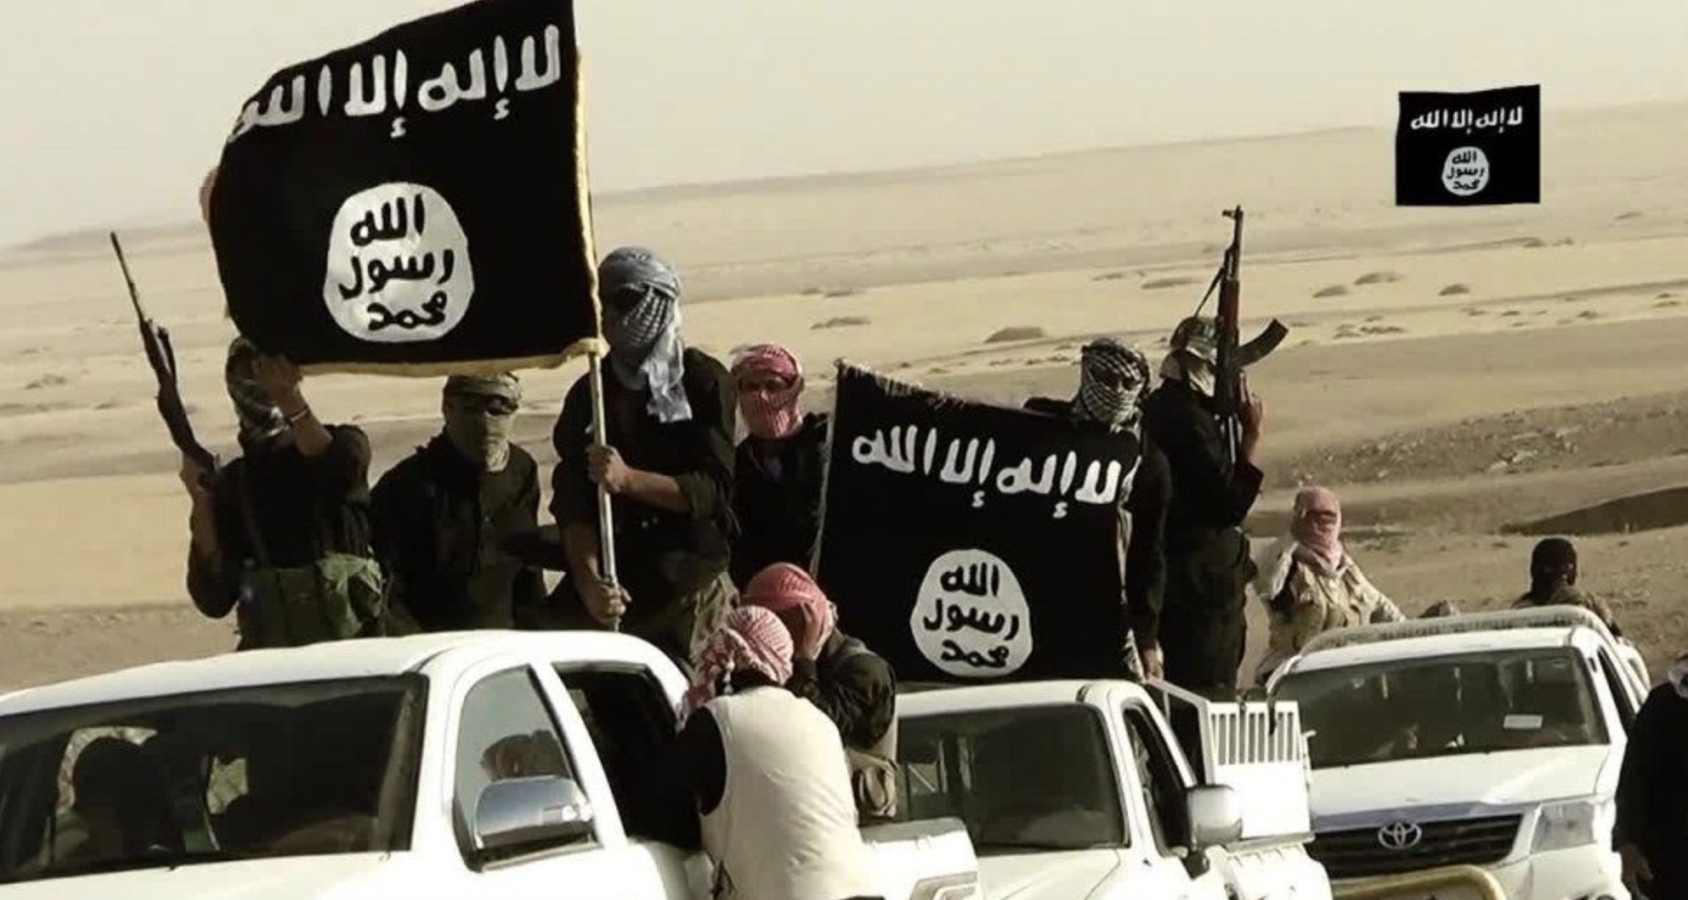 50,000 ISIS Fighters Killed Over The Past Two Years, U.S. Military Official Says Featured